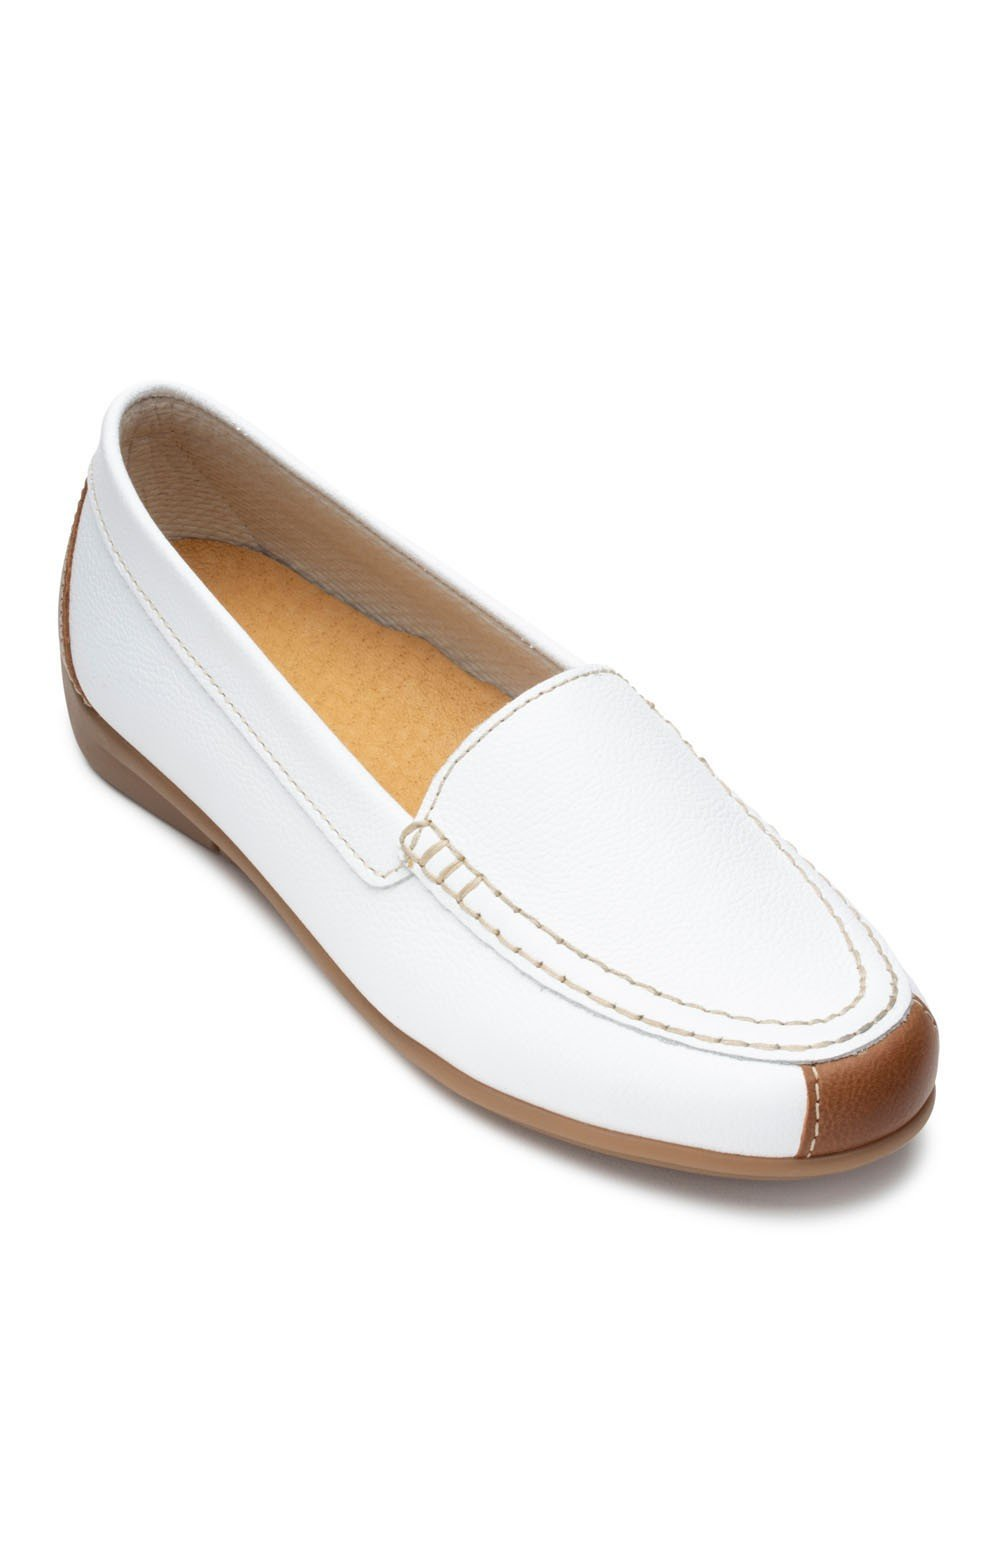 686877a528a01 Ladies Gabor Nubuck Moccasin - House of Bruar